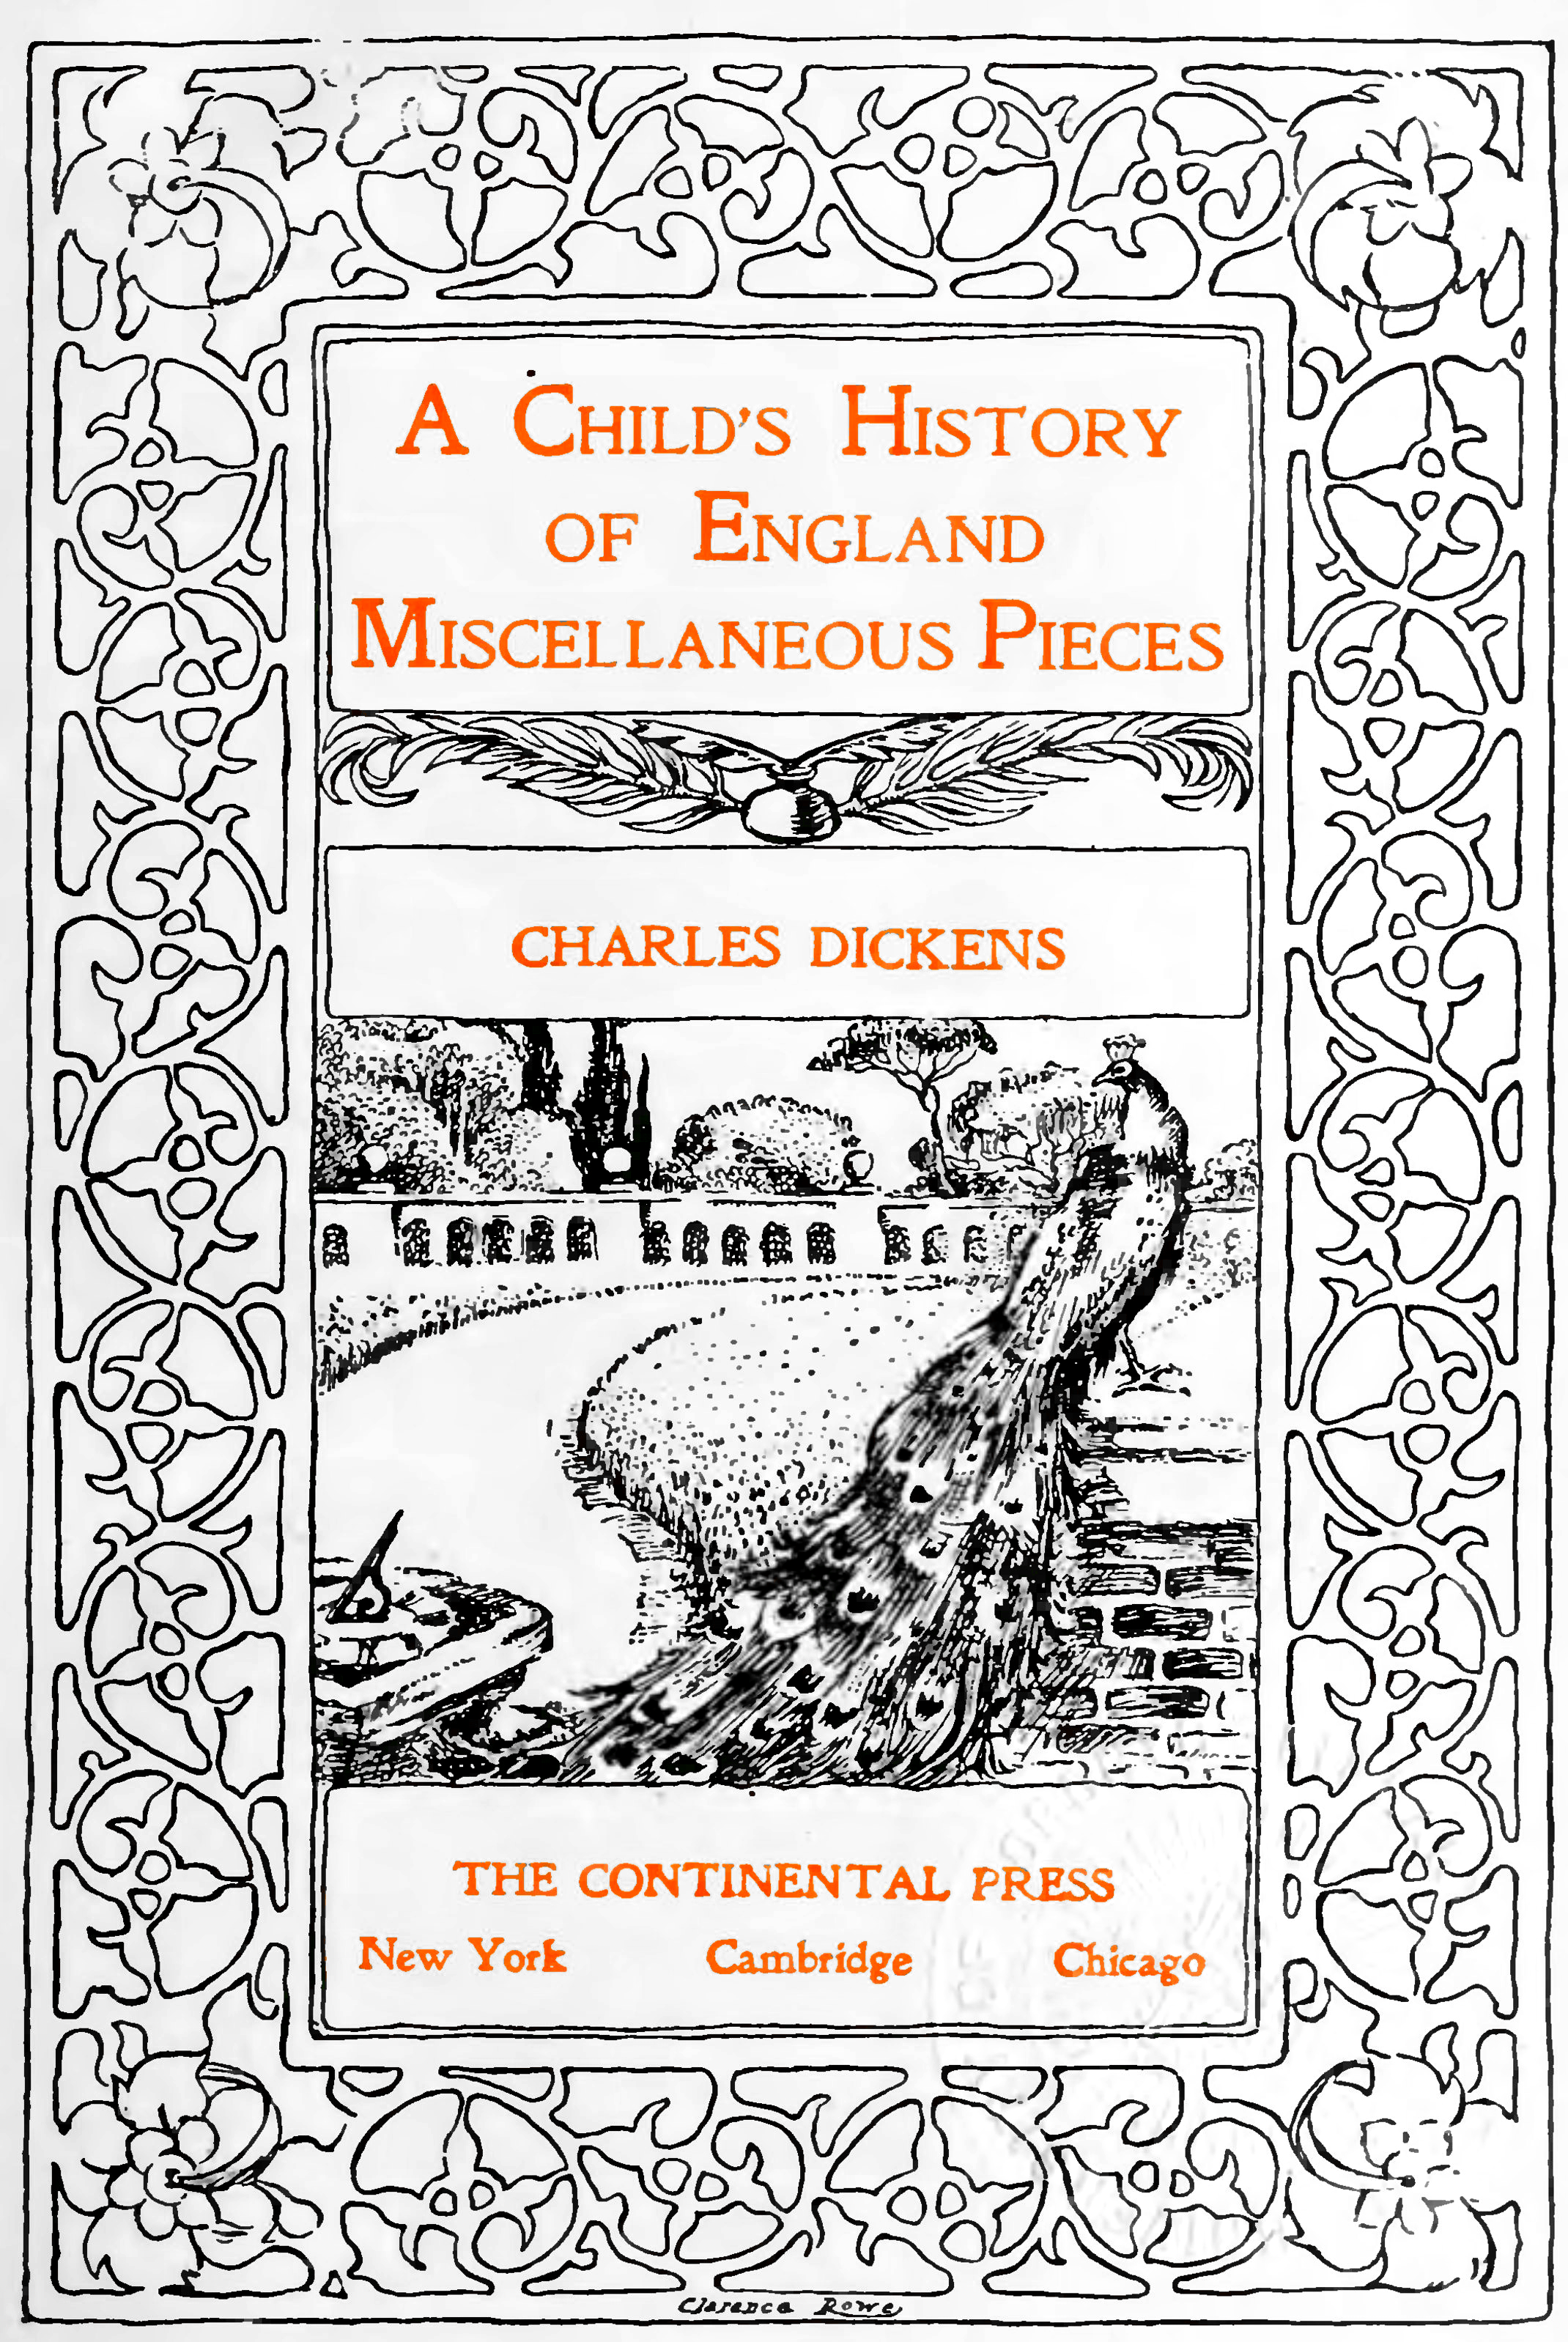 A Child's History of England; Miscellaneous Pieces; Charles Dickens; The Continental Press; New York, Cambridge, Chicago